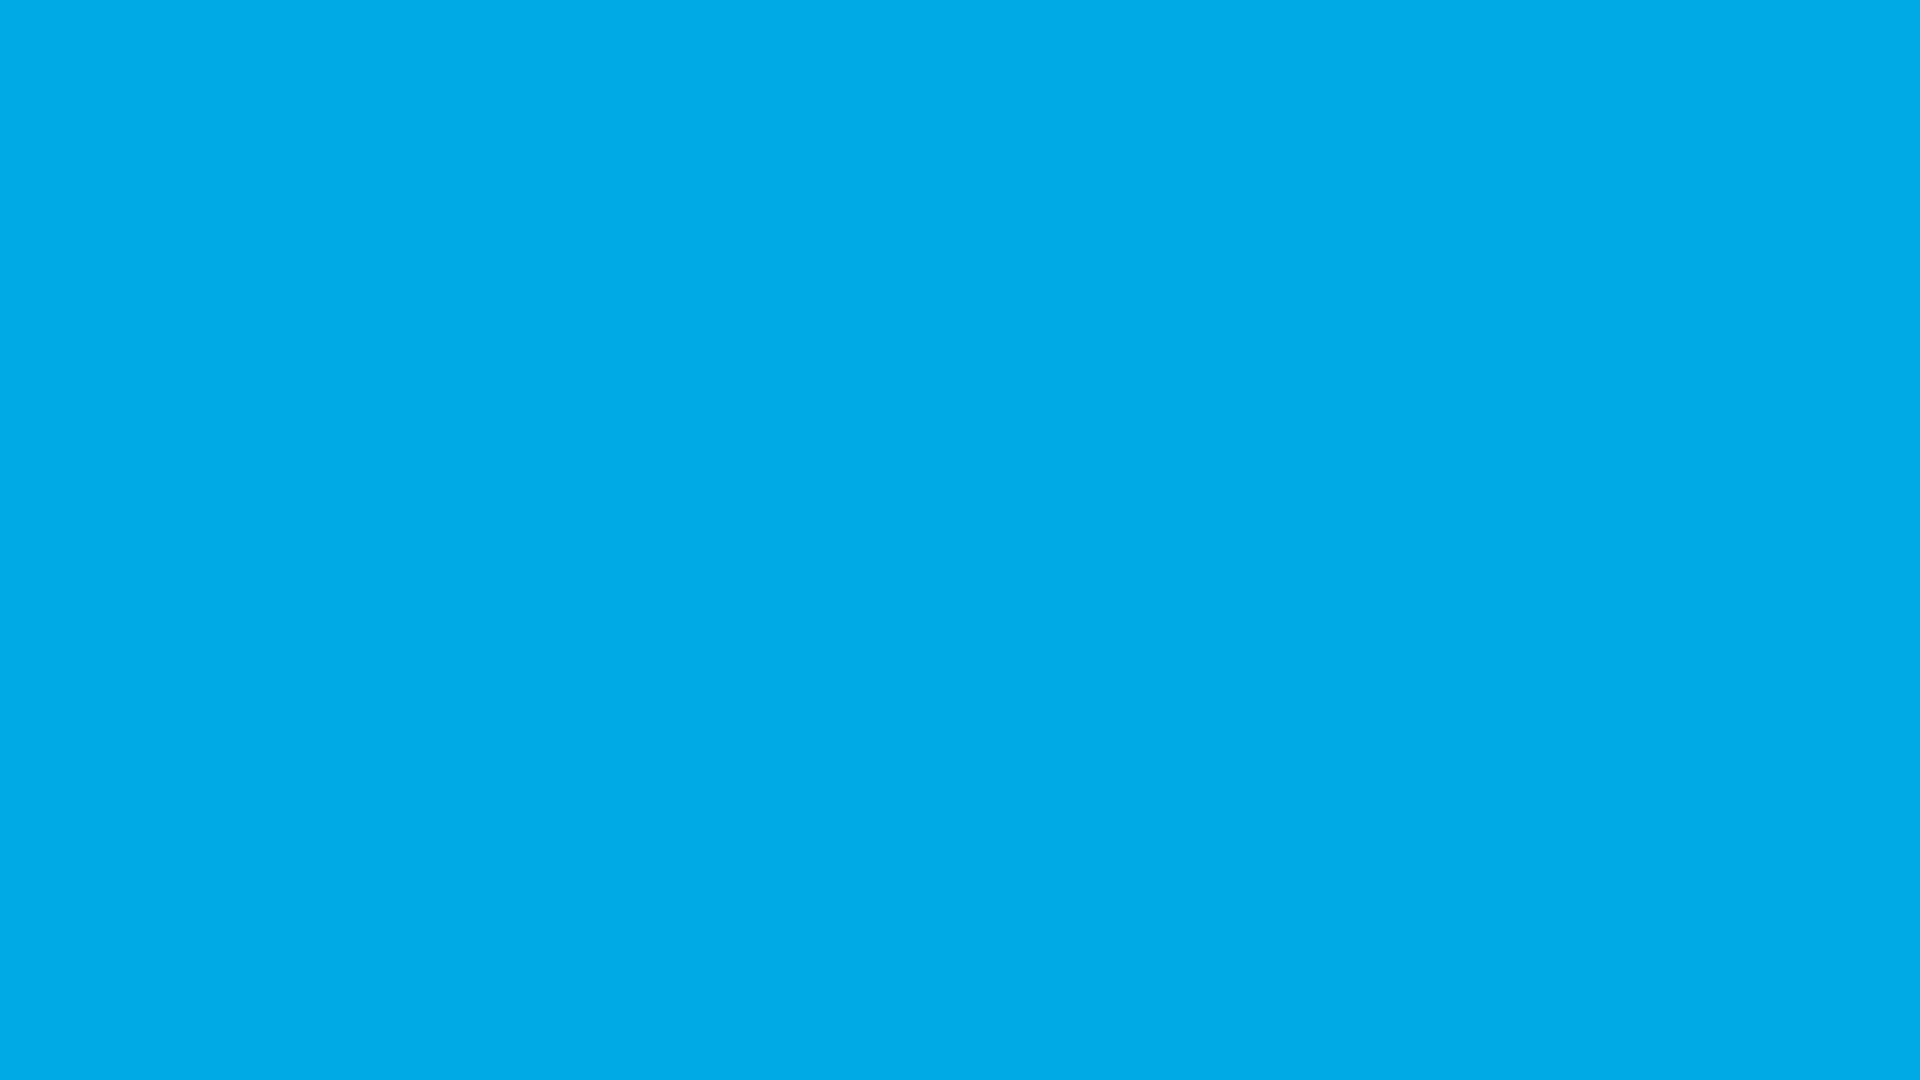 1920x1080 Spanish Sky Blue Solid Color Background